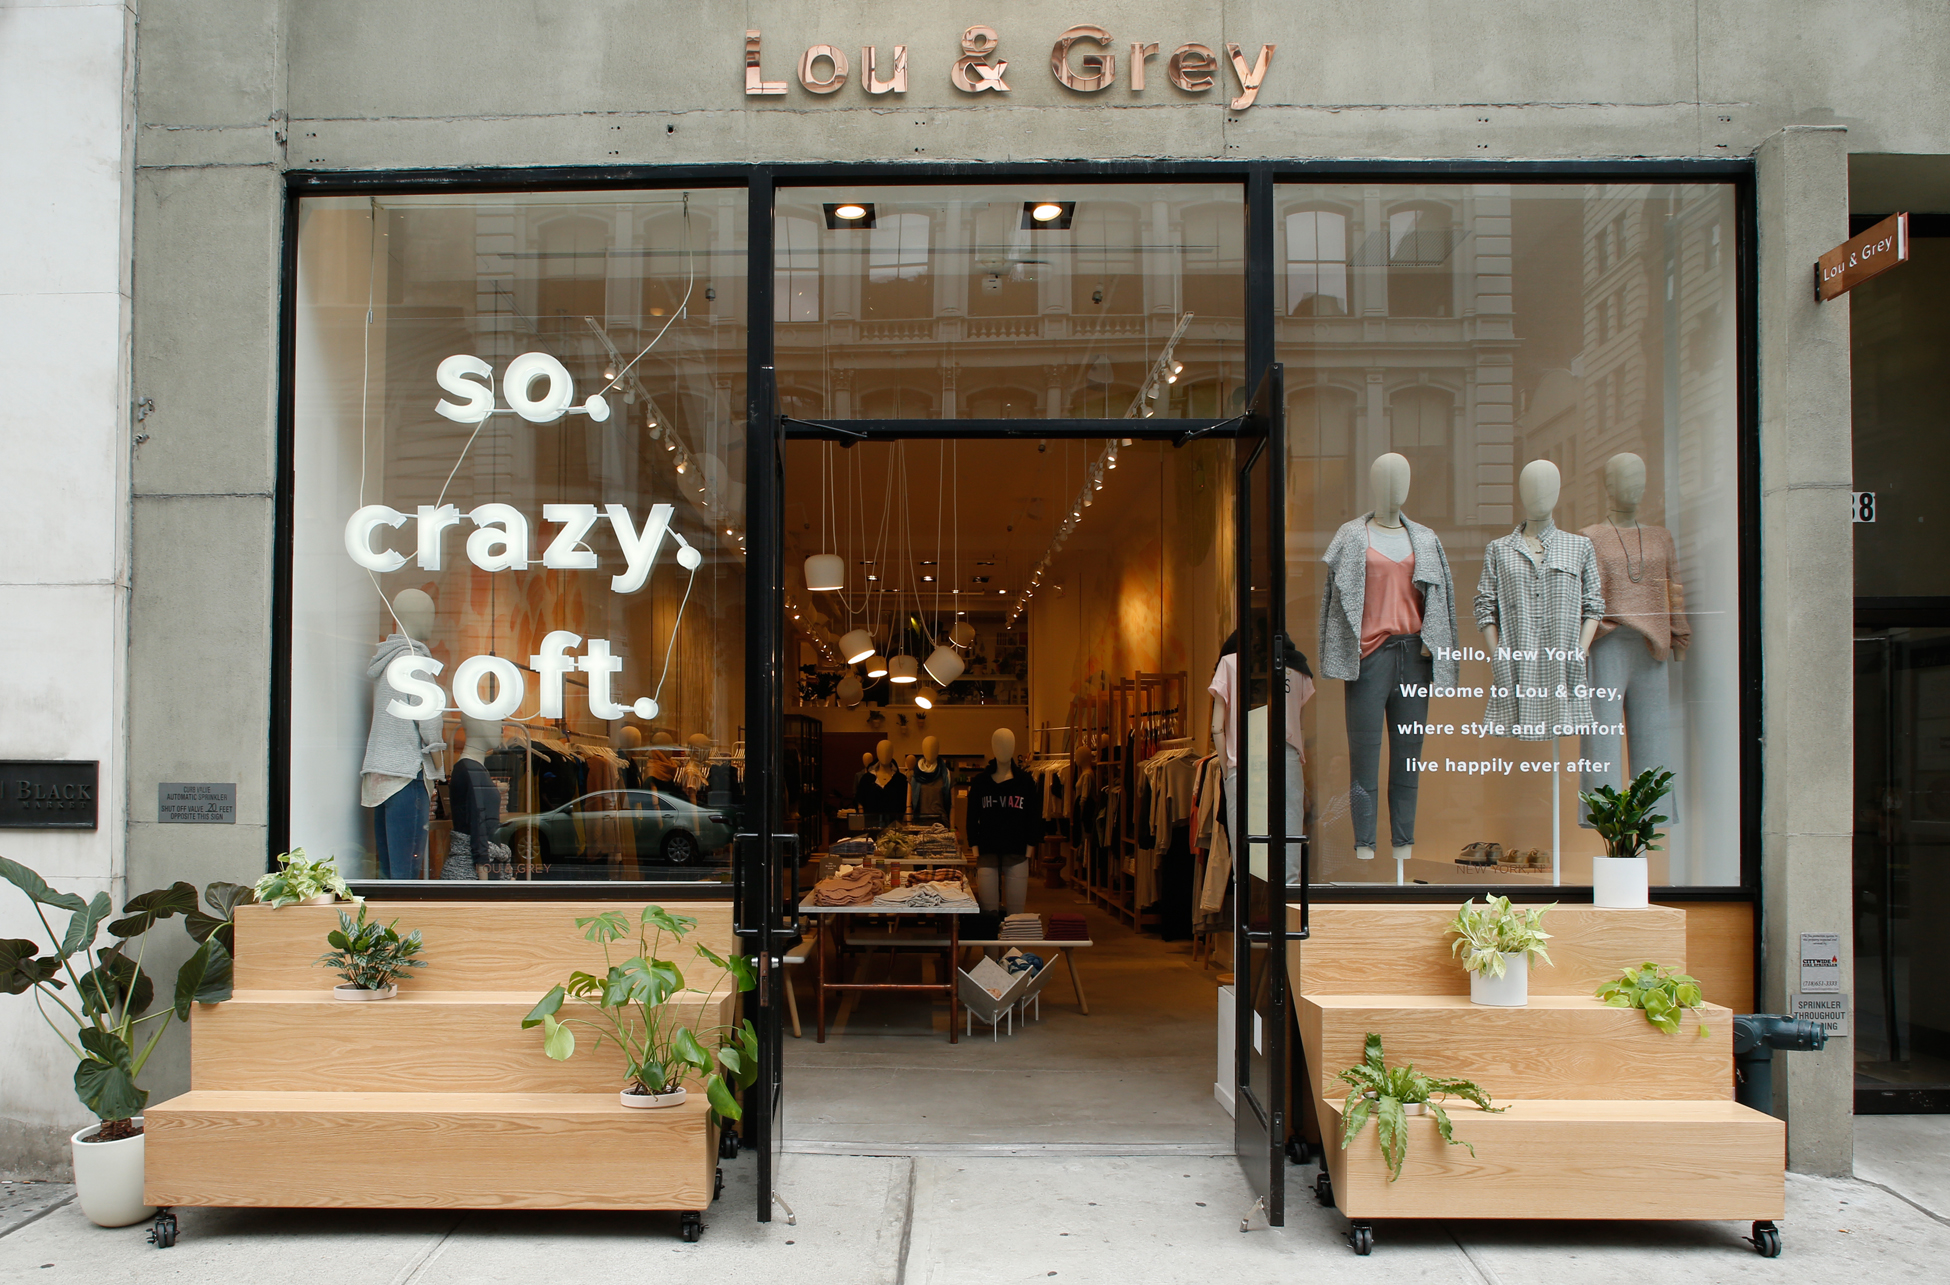 Inside Lou & Grey's first New York City store.